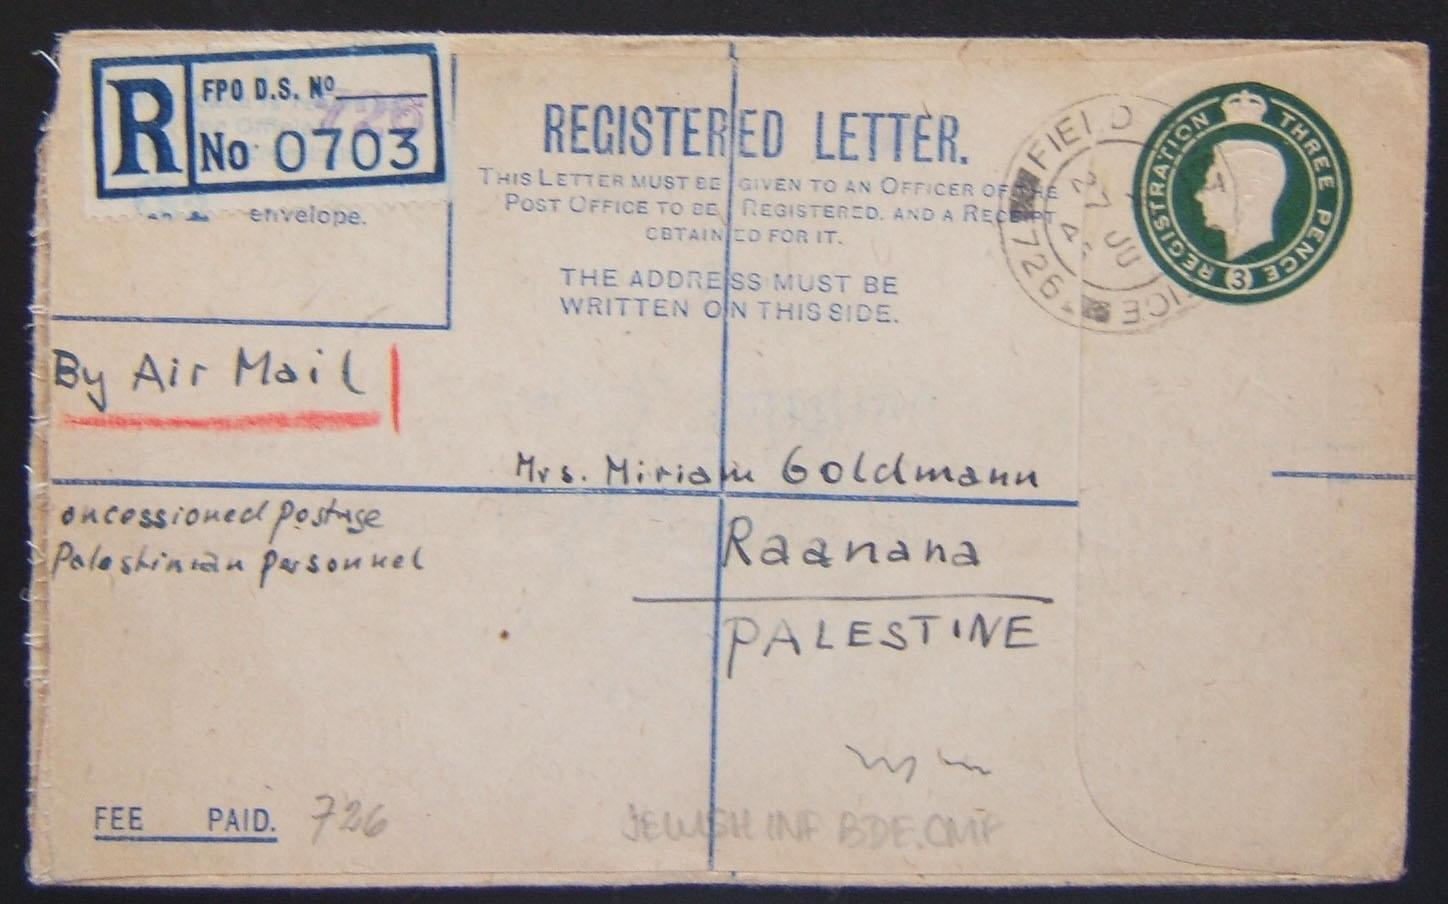 Jewish Brigade mail: 1939/44 British Army 3d KGVI registration envelope (Ba BF.02 B1) ex FPO 726 (Italy) to civilian in RAANANA, 27 JU 45 and arrived 9 JY 45; handwritten